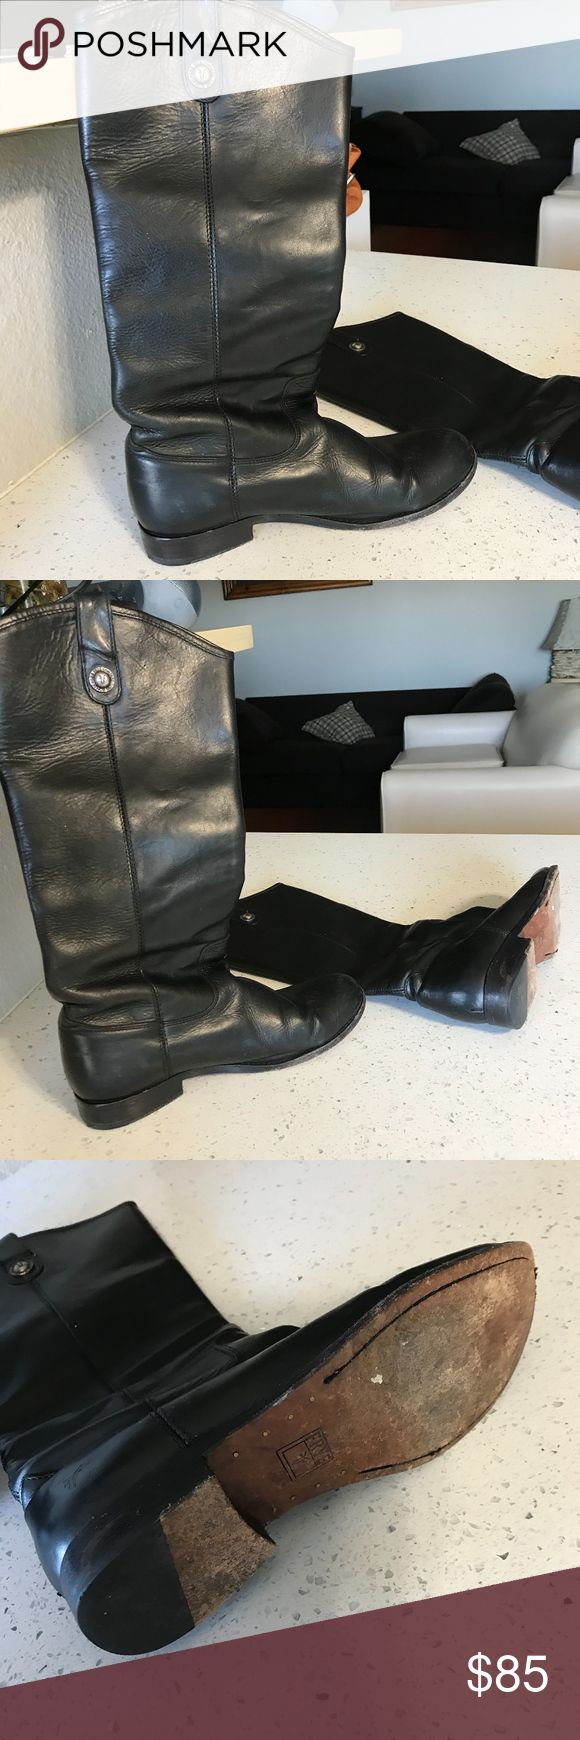 """Frye riding boots black color size 7 1/2 , good condition with wear on the soles, 15.5"""" tall Frye Shoes Combat & Moto Boots"""